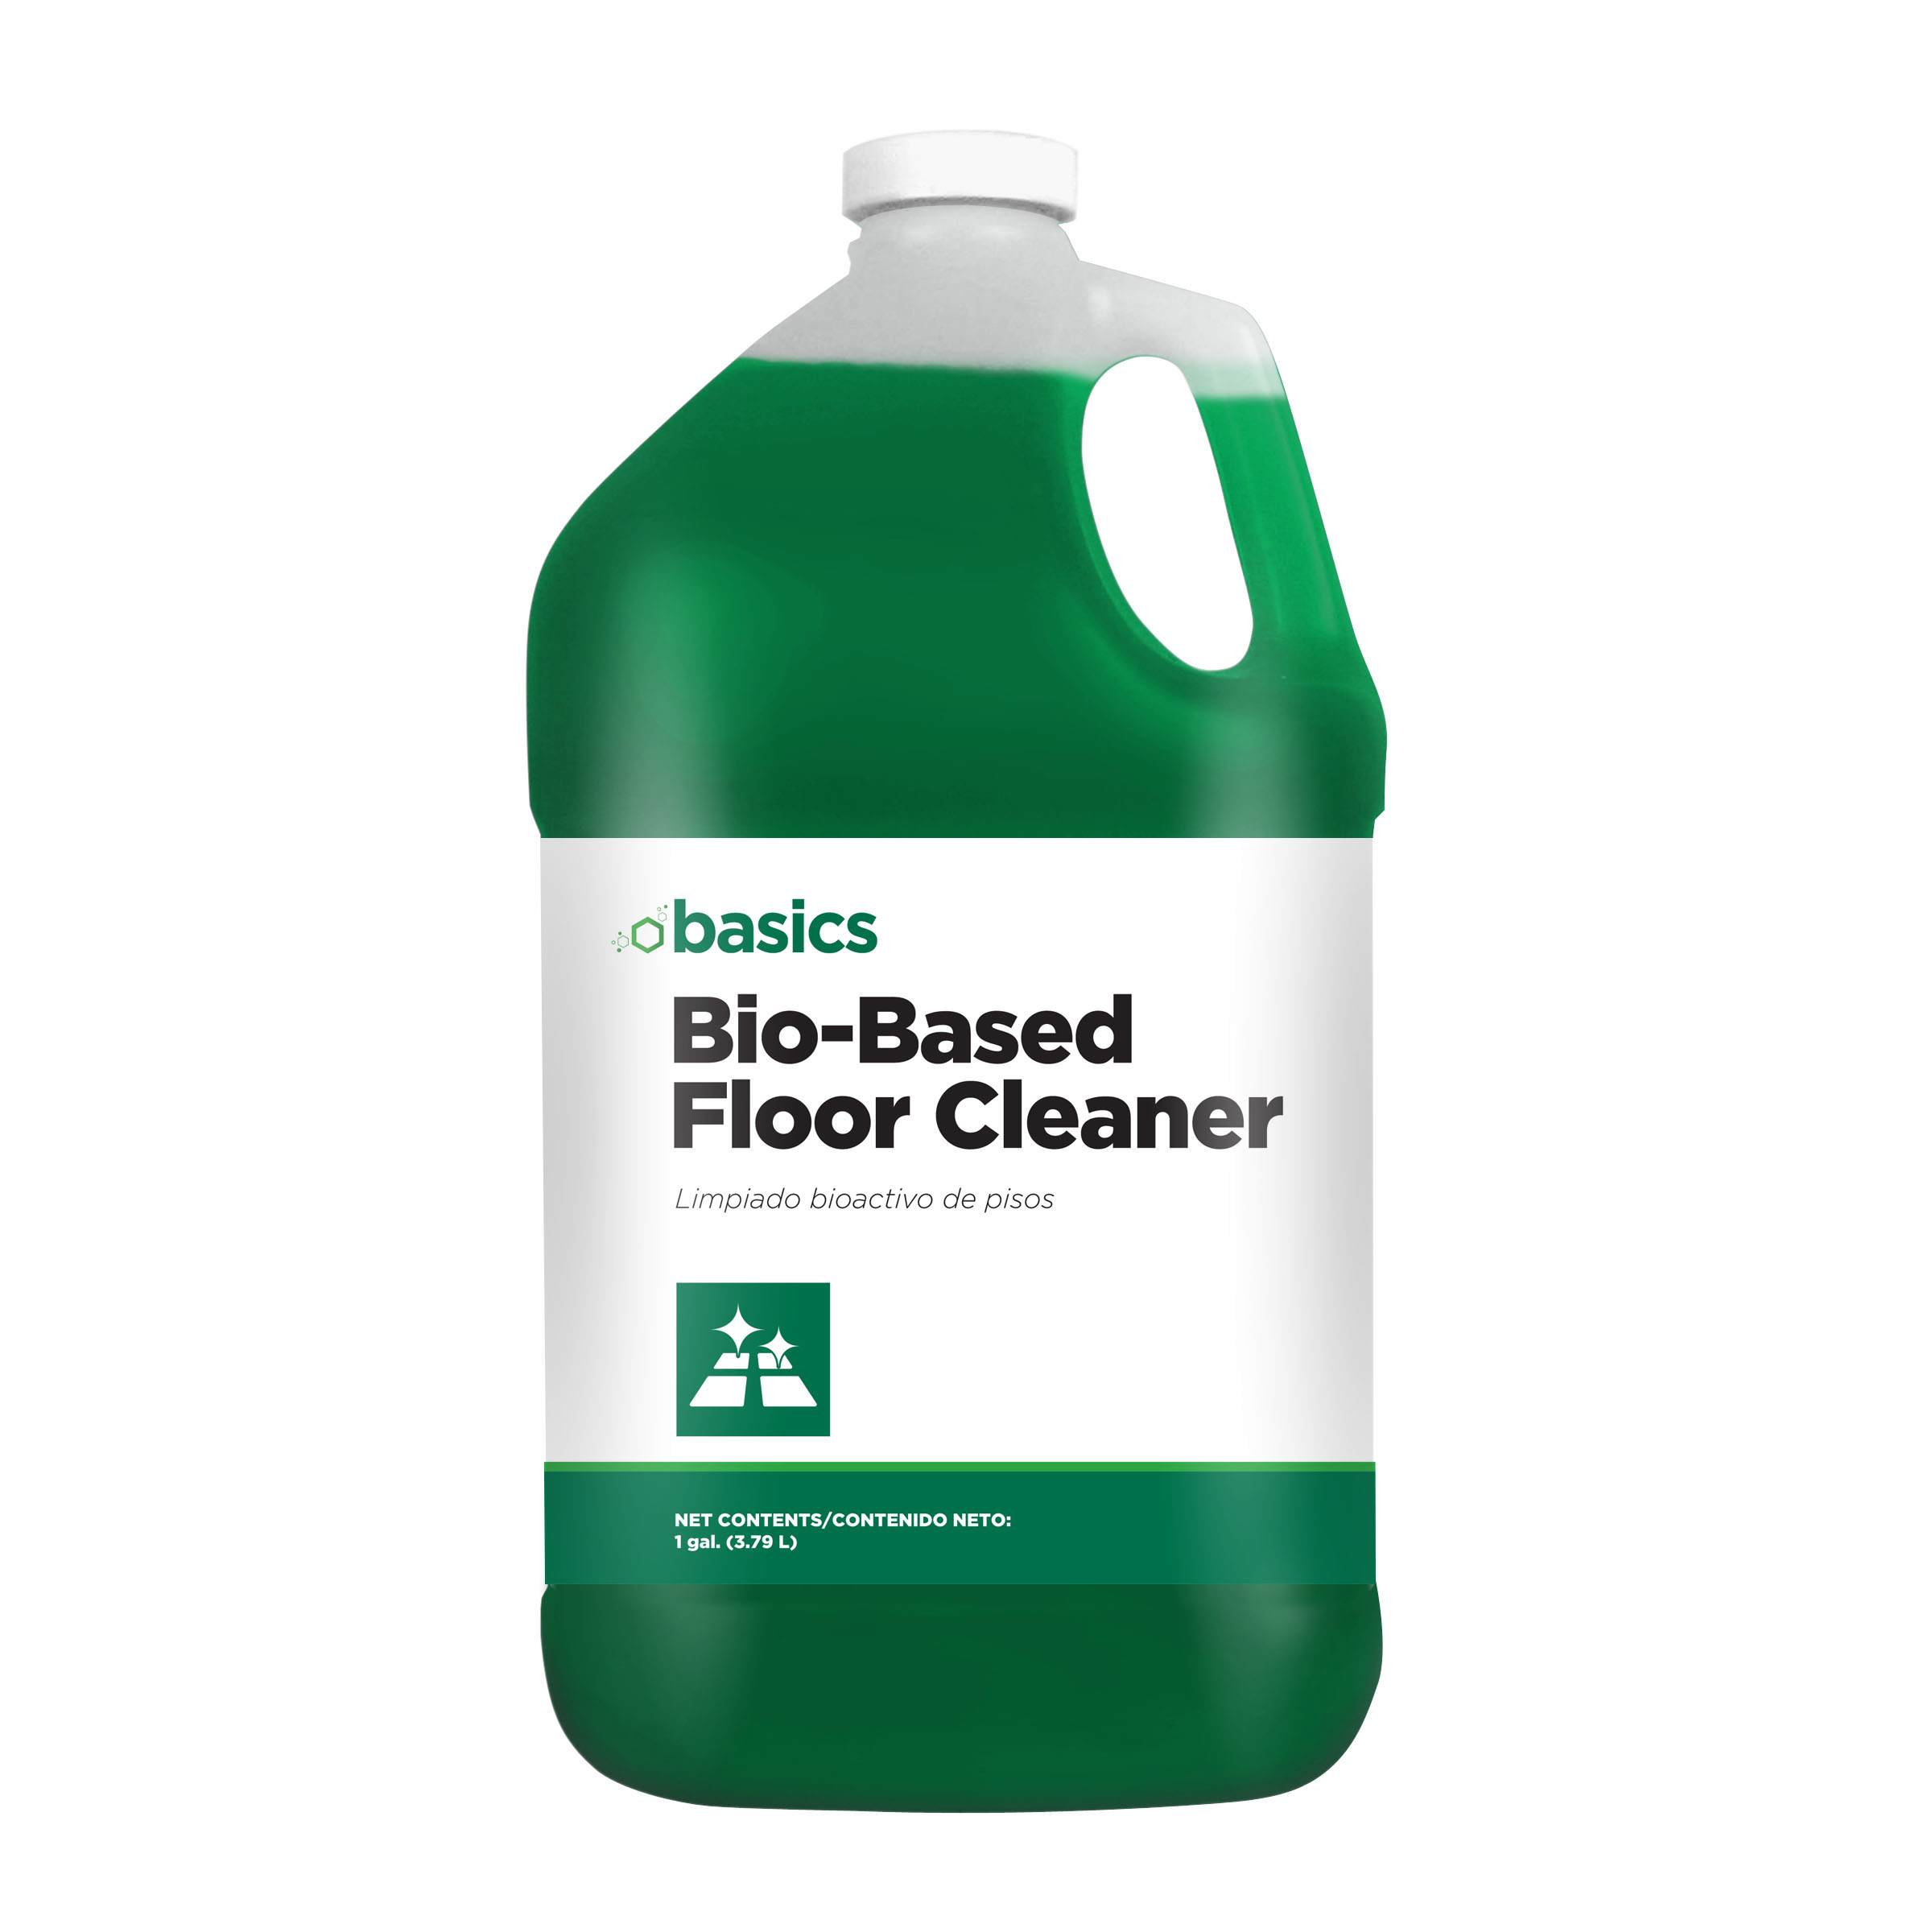 101100651_BIO_BASED_FLOOR_CLEANER